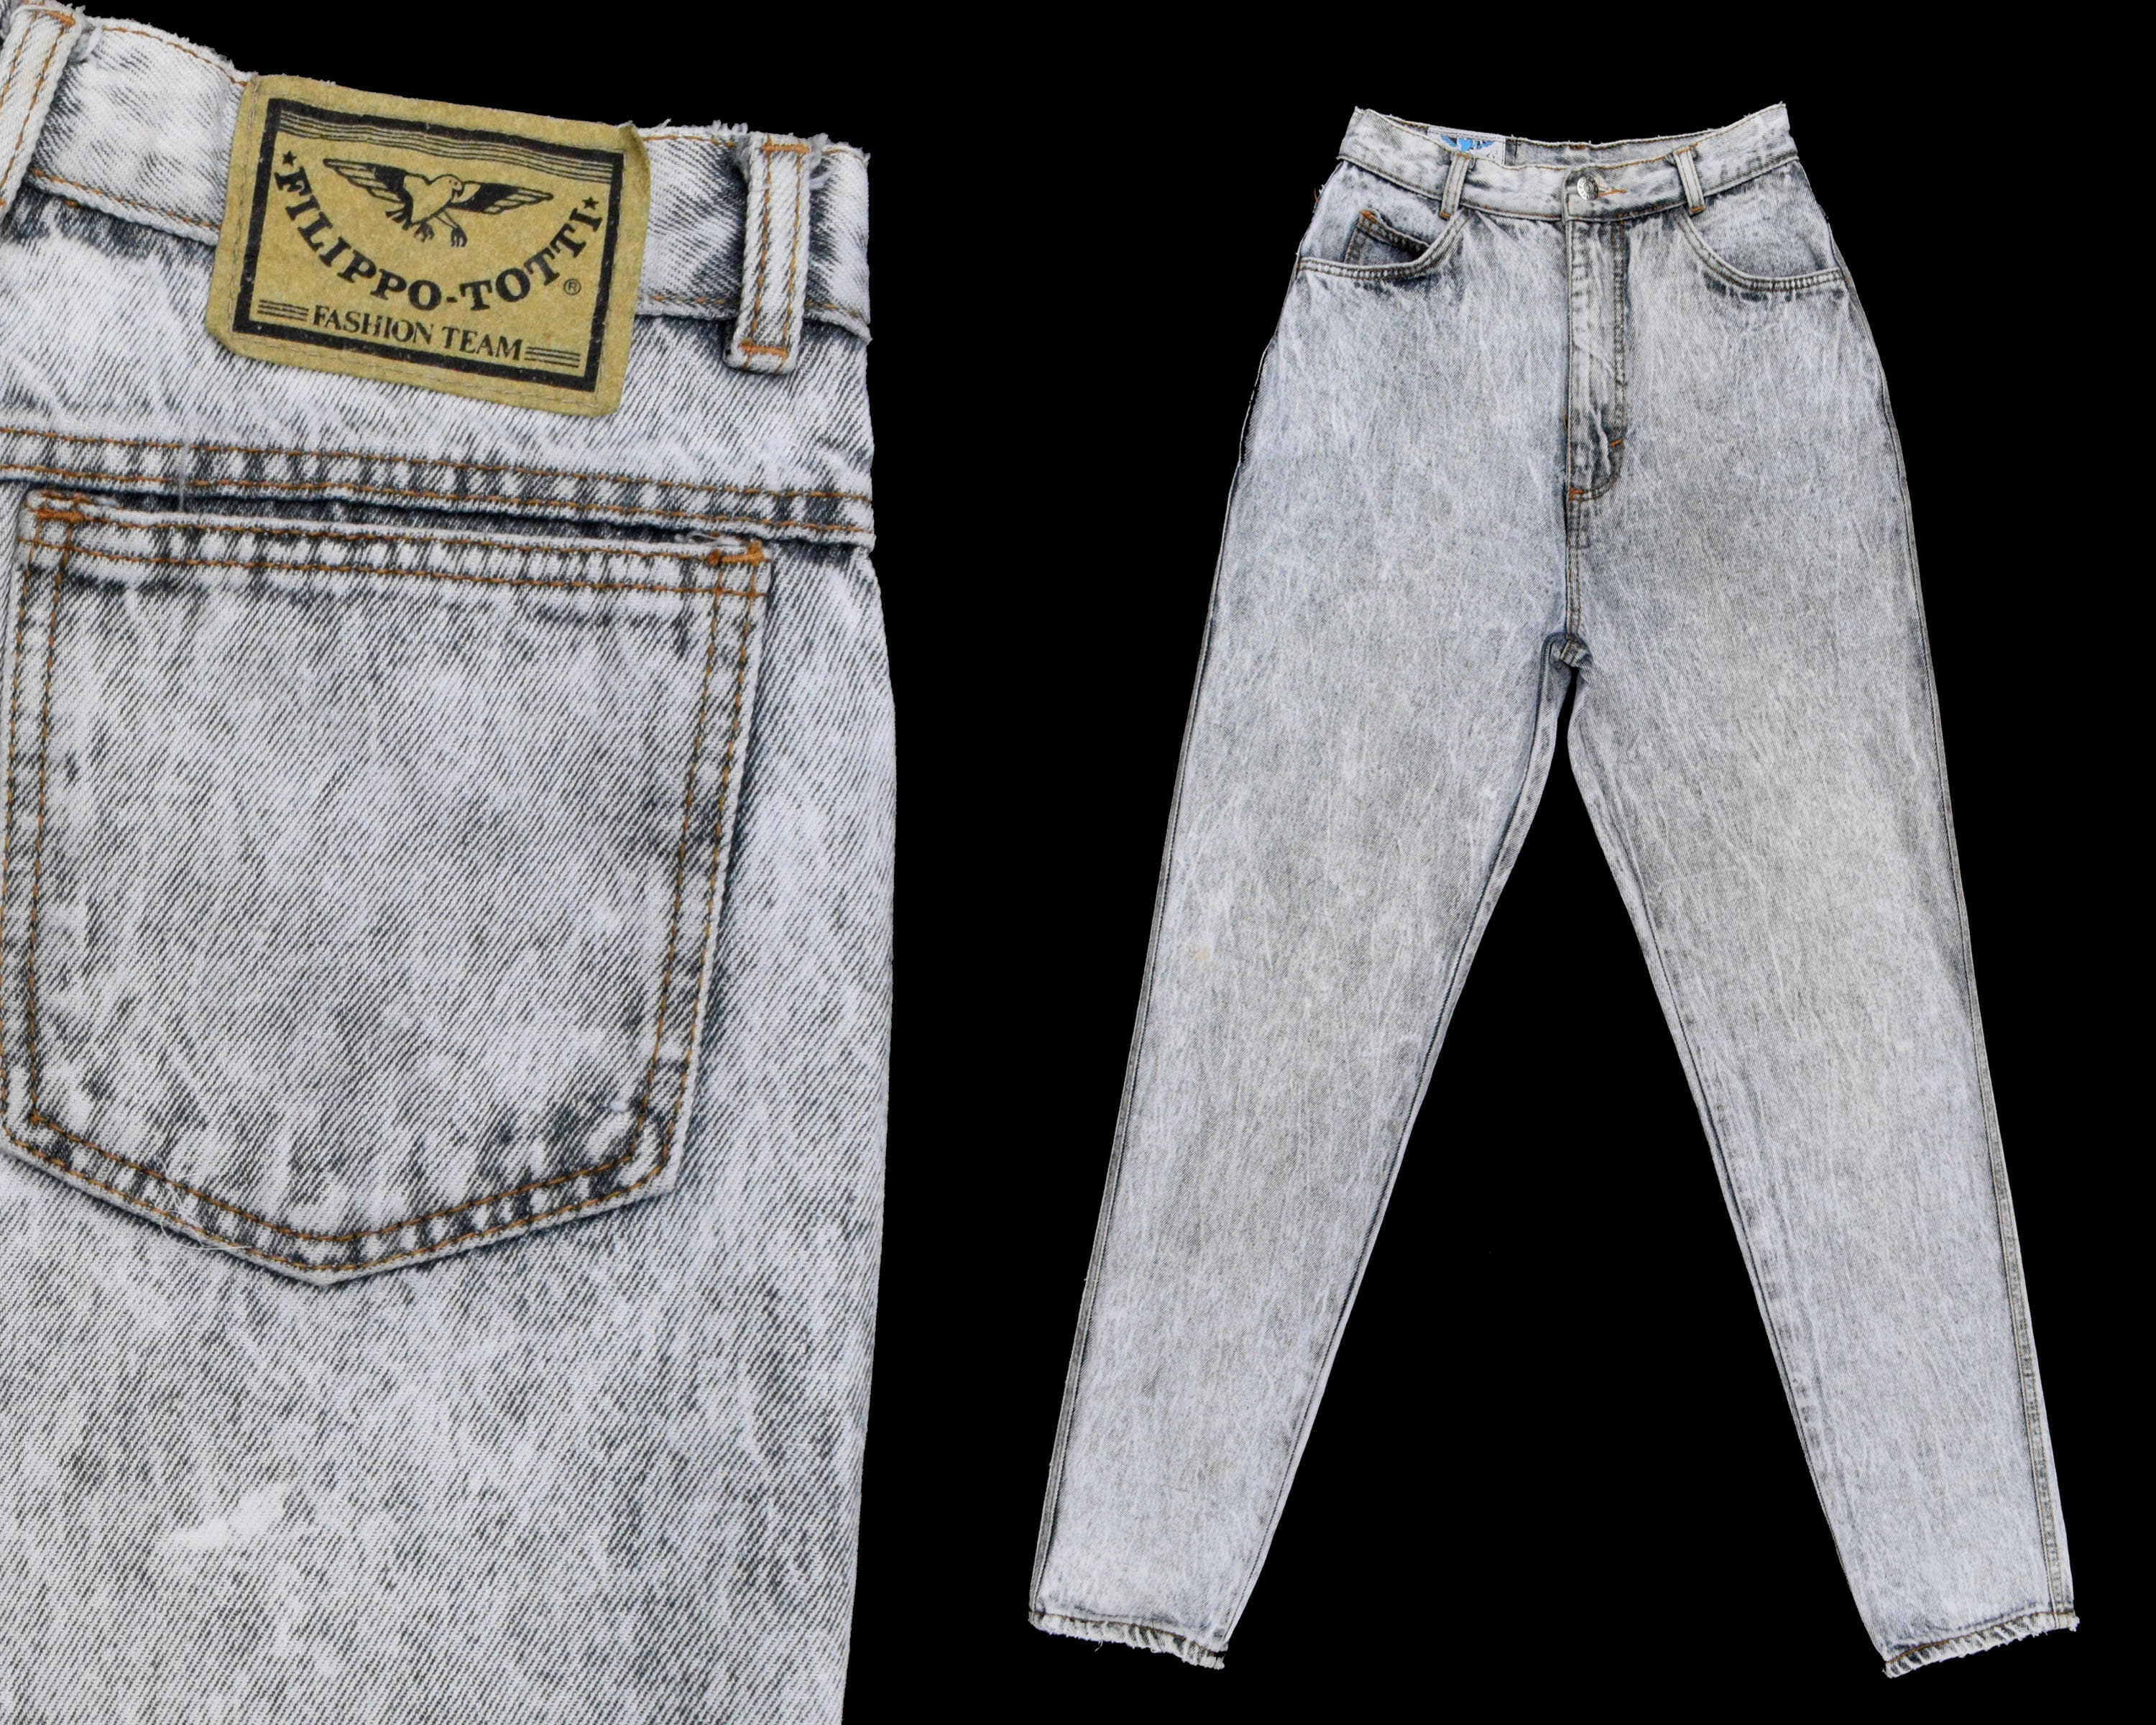 e1c099f5aa671 80s Vintage High Waisted Jeans FILIPPO TOTTI Jeans Gray Acid